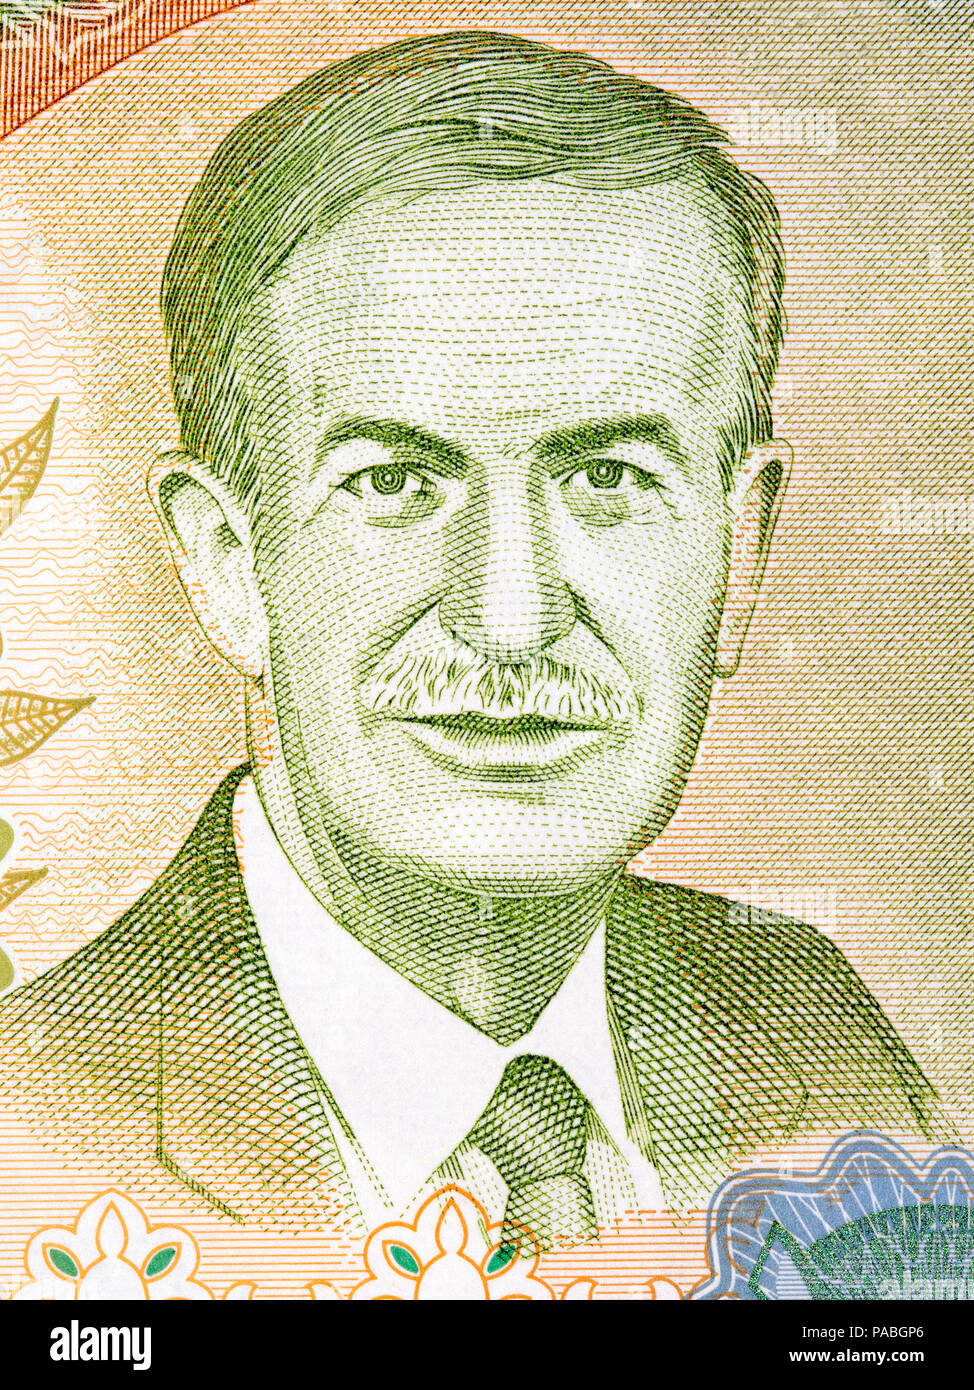 Hafez al-Assad portrait from Syrian Pound - Stock Image